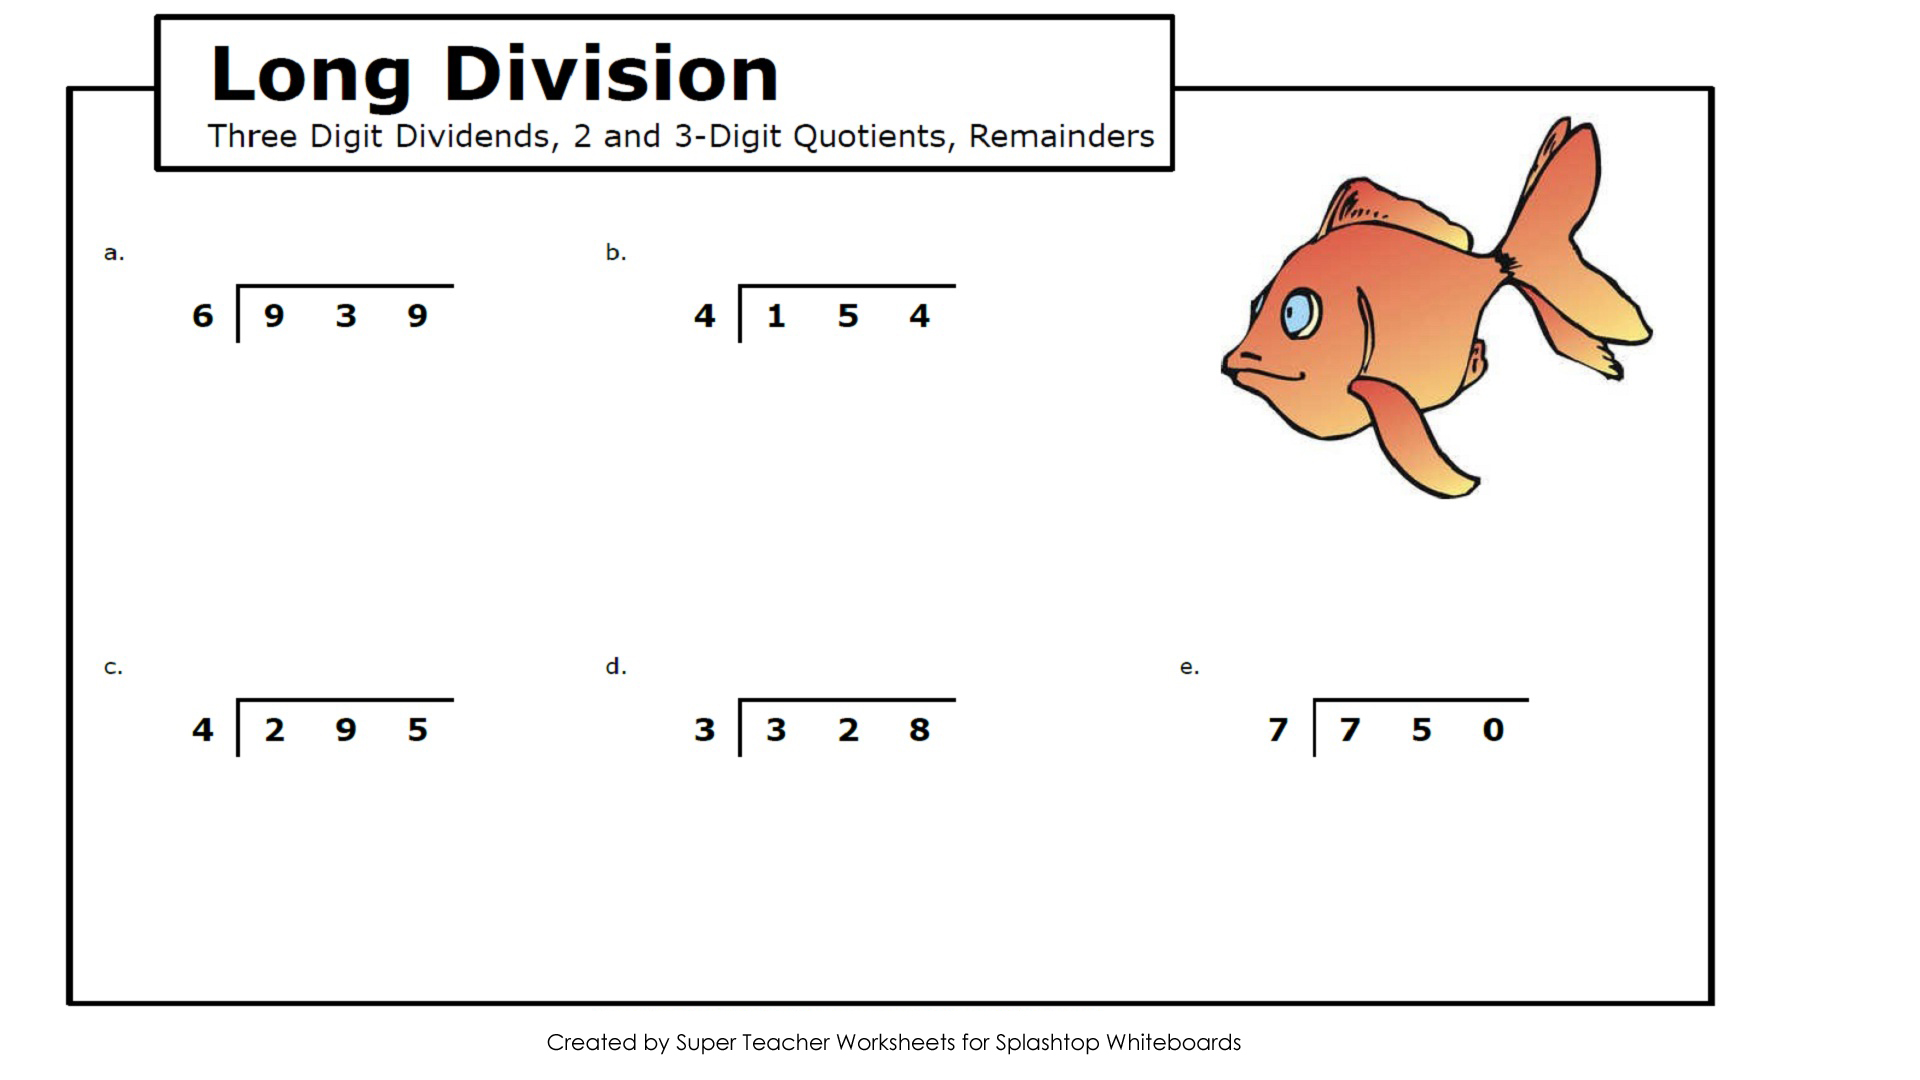 Worksheet Long Division Printable Worksheets Grass Fedjp